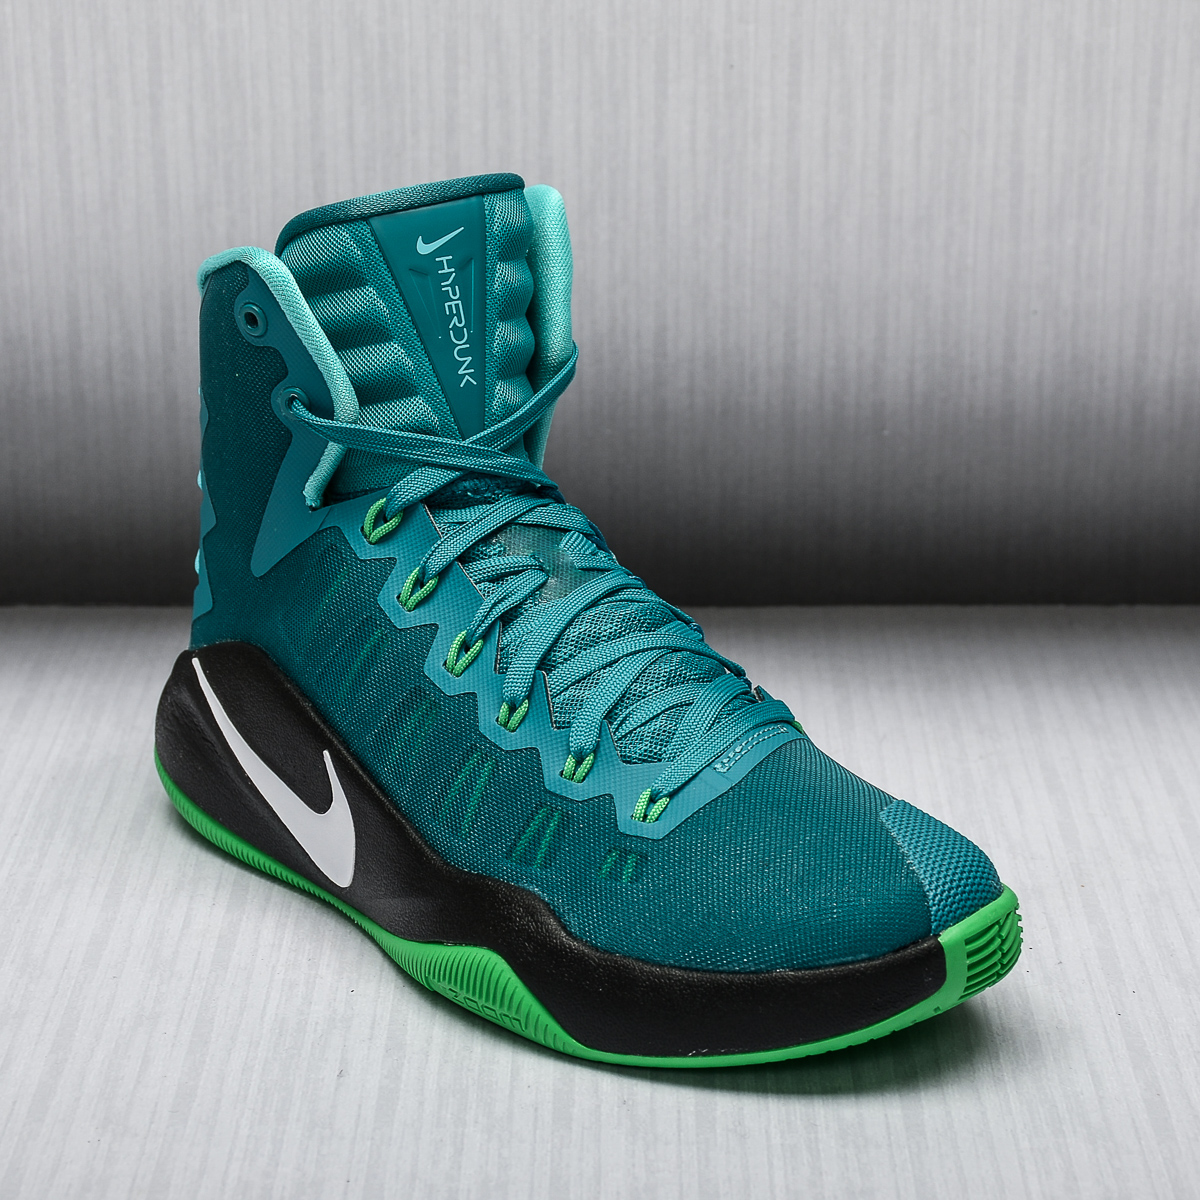 Nike Hyperdunk 2016 Basketball Shoes - BASKETBALL SHOES ...